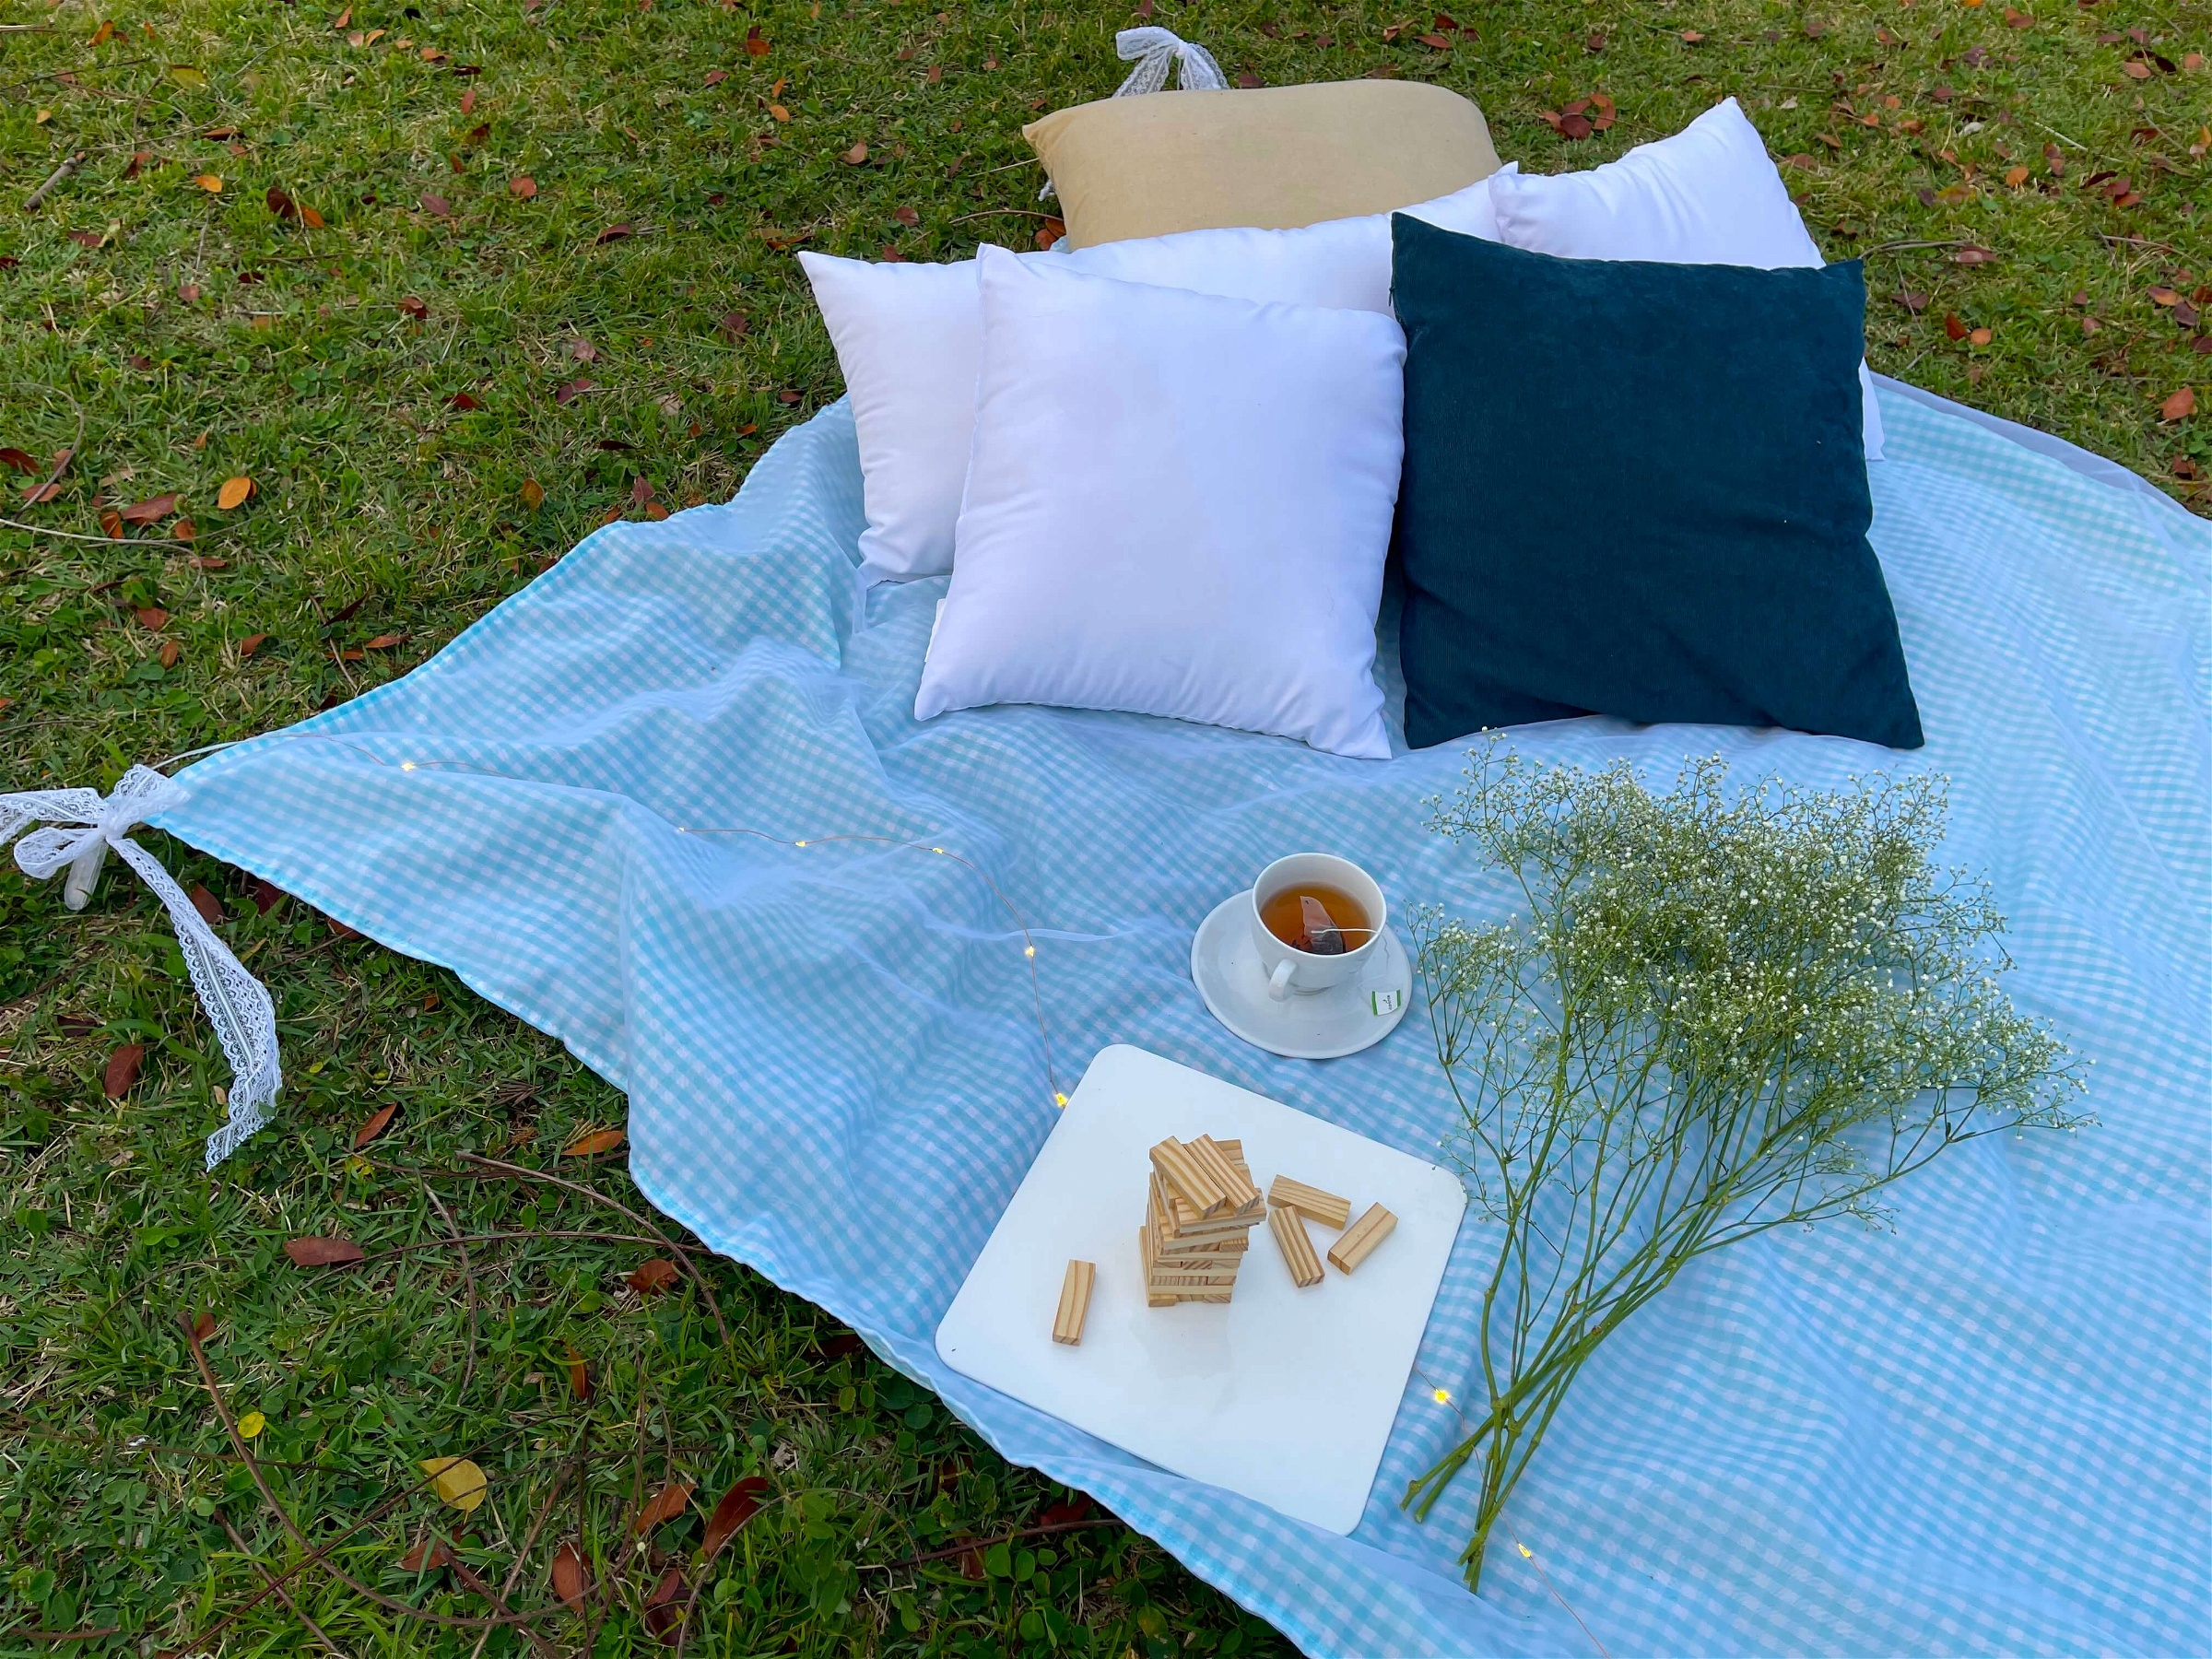 Simple picnic with flowers, tea and games in Luis Muñoz Rivera Park. Designed by Lovely Picnic Hour